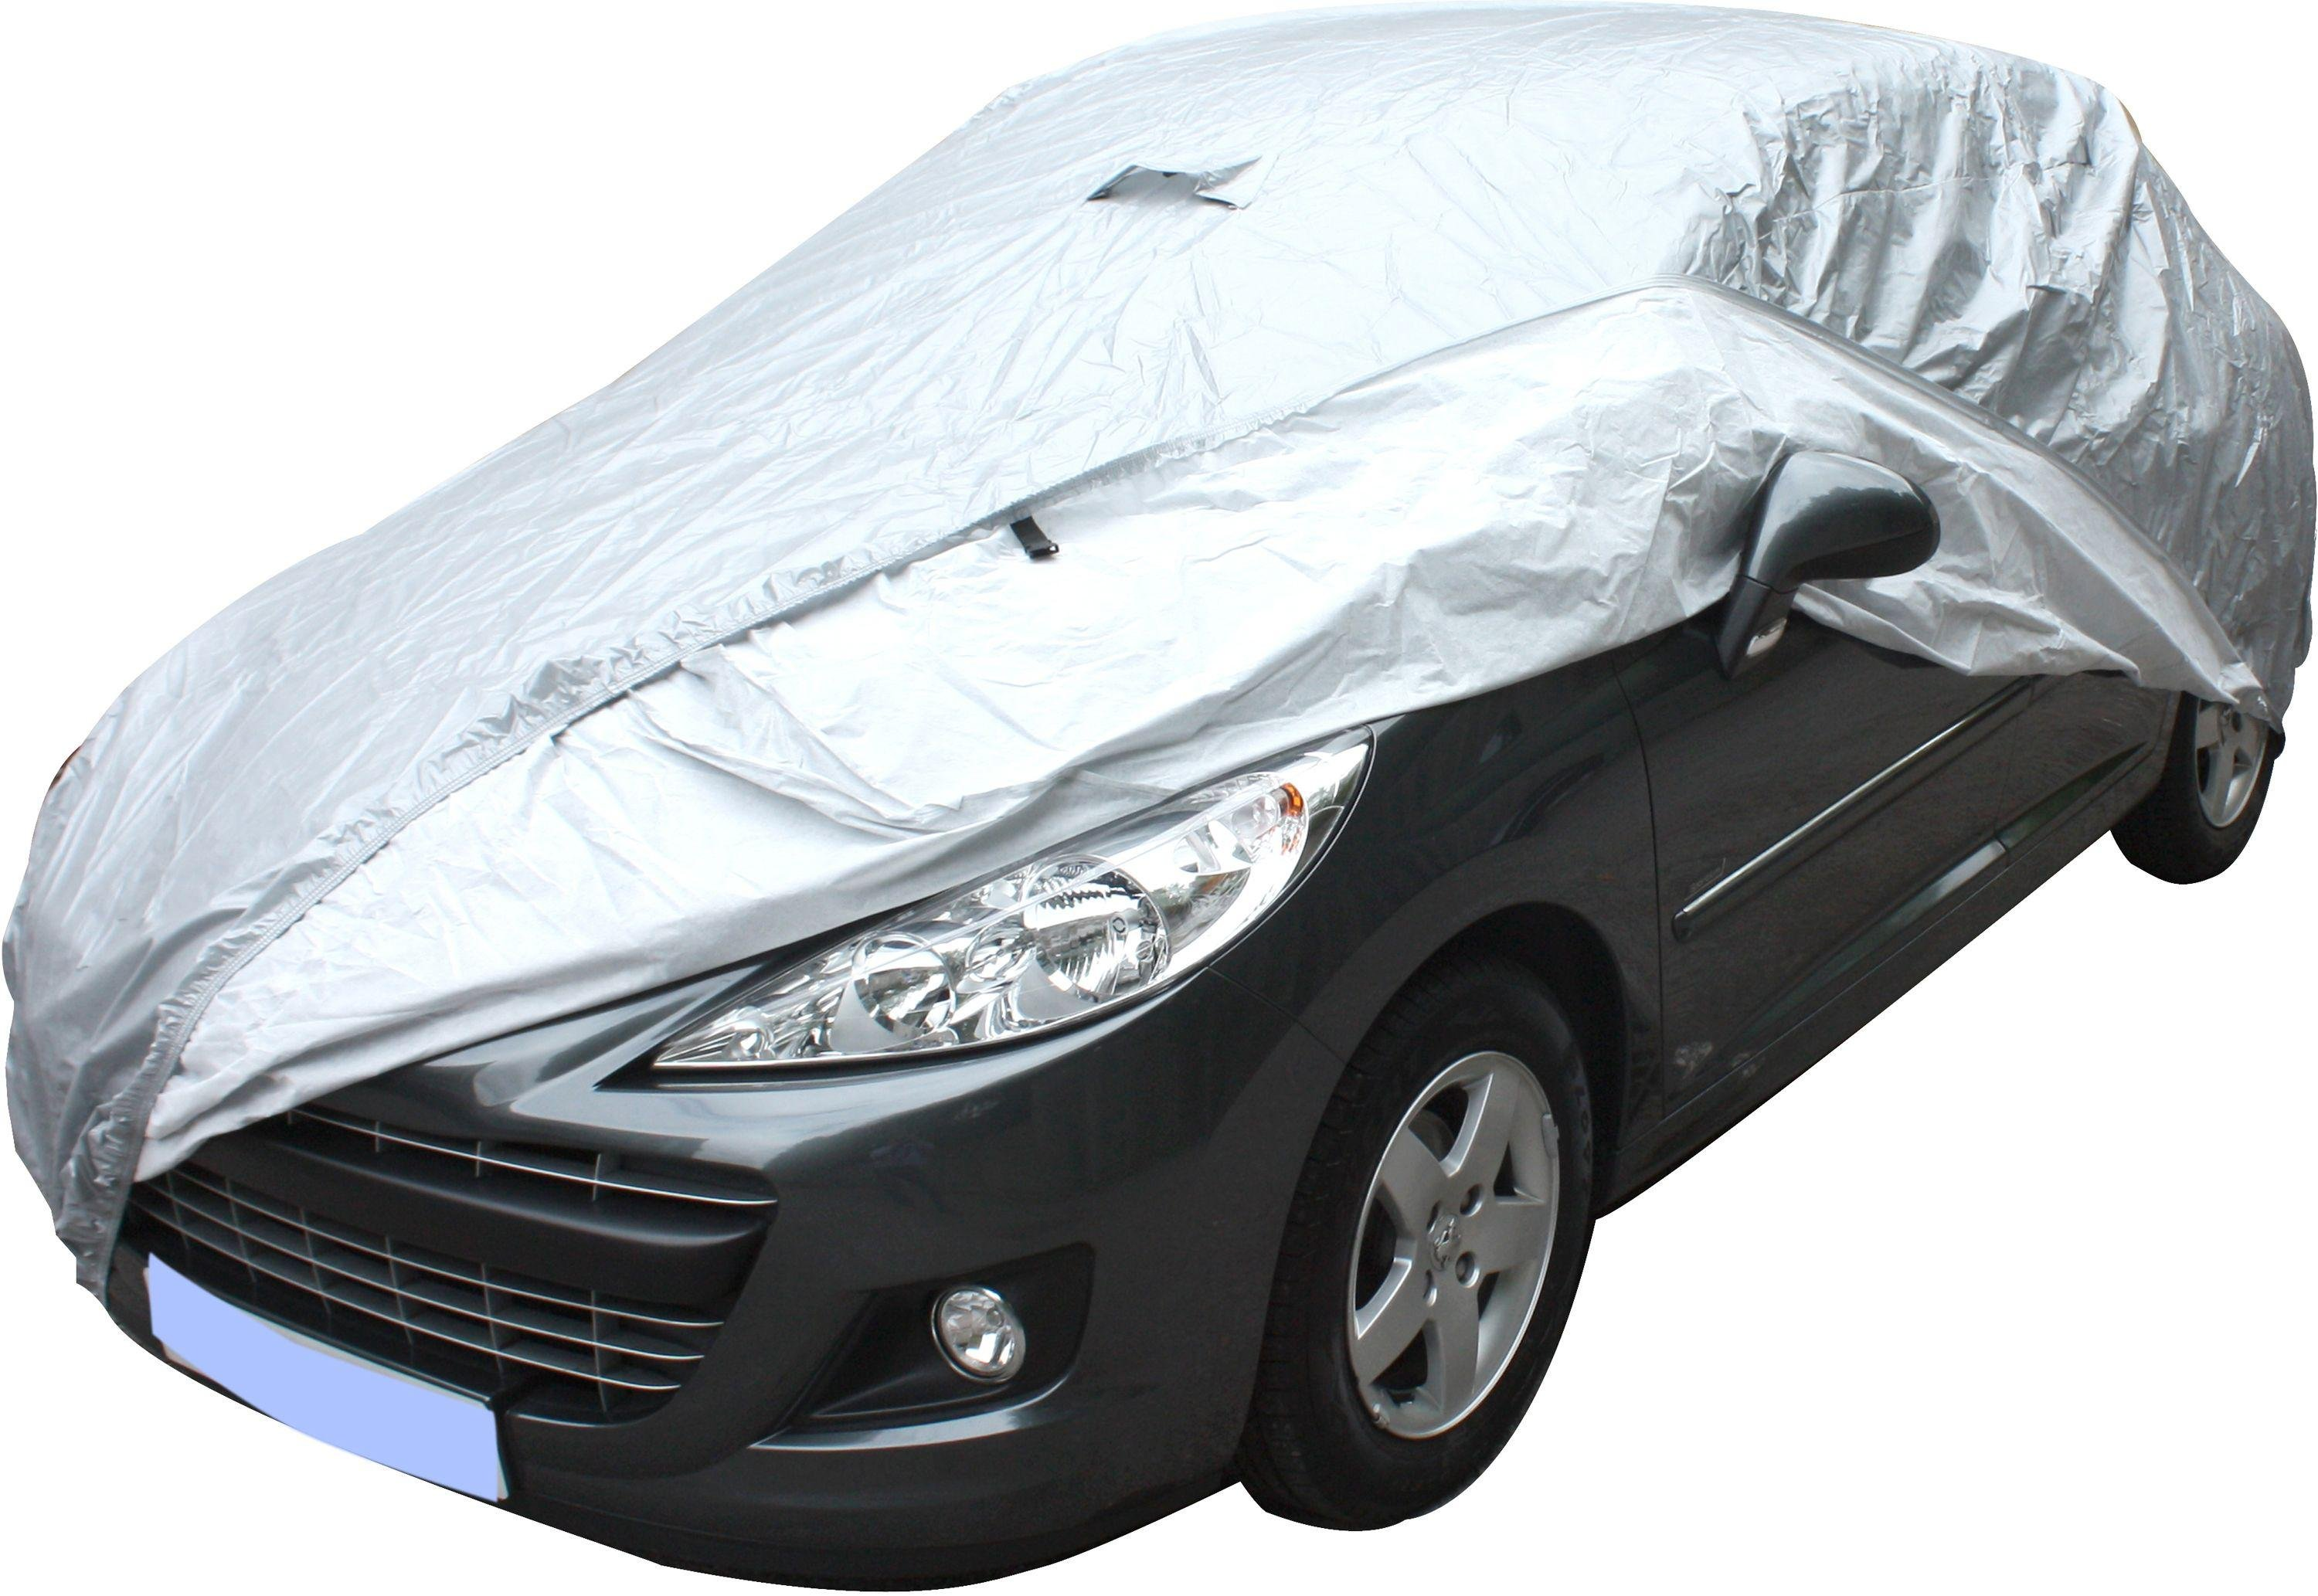 Sakura Fully Waterproof Car Cover - Small